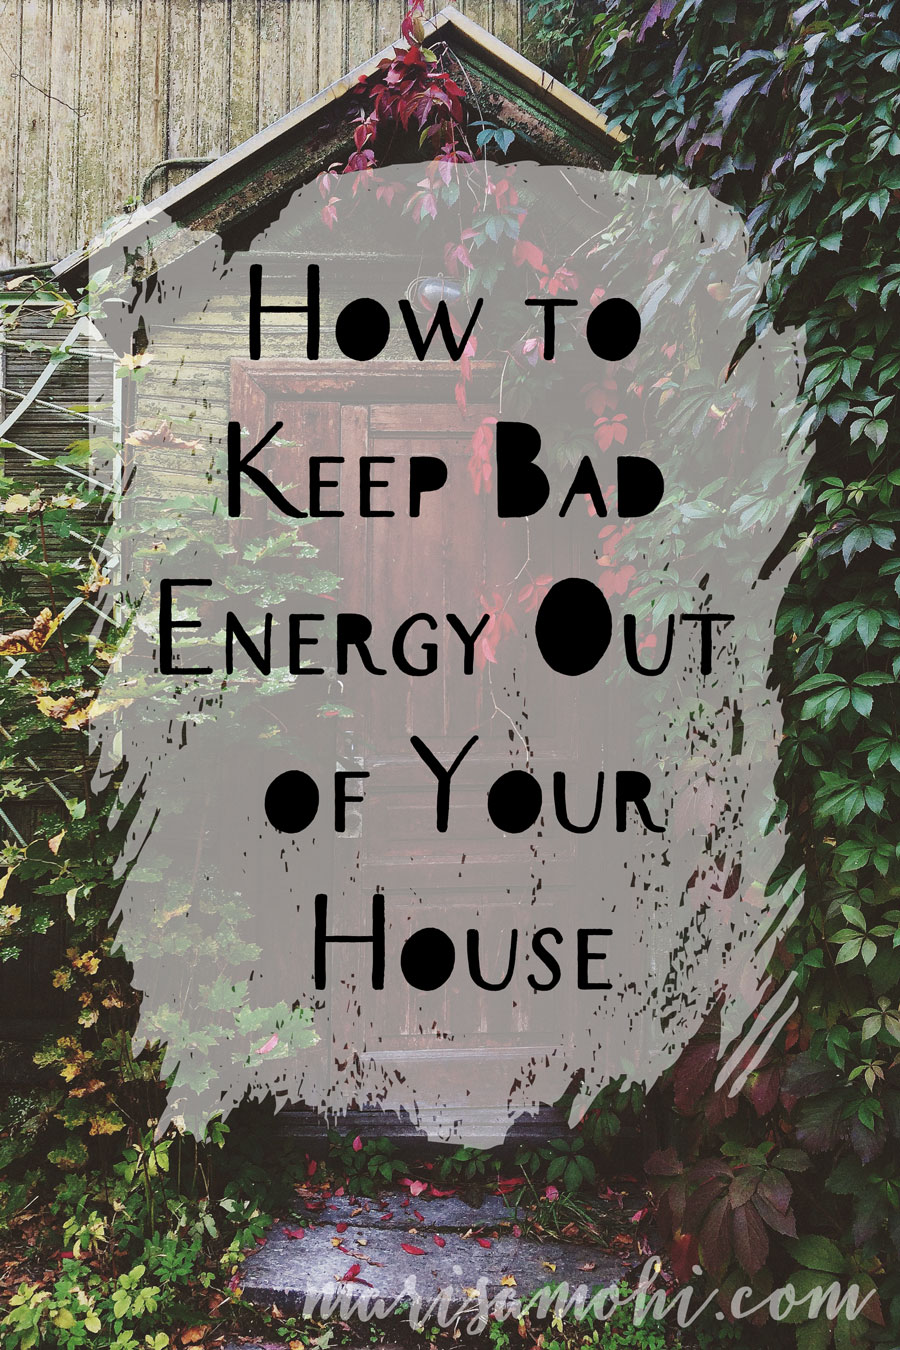 How to Keep Bad Energy Out of Your House